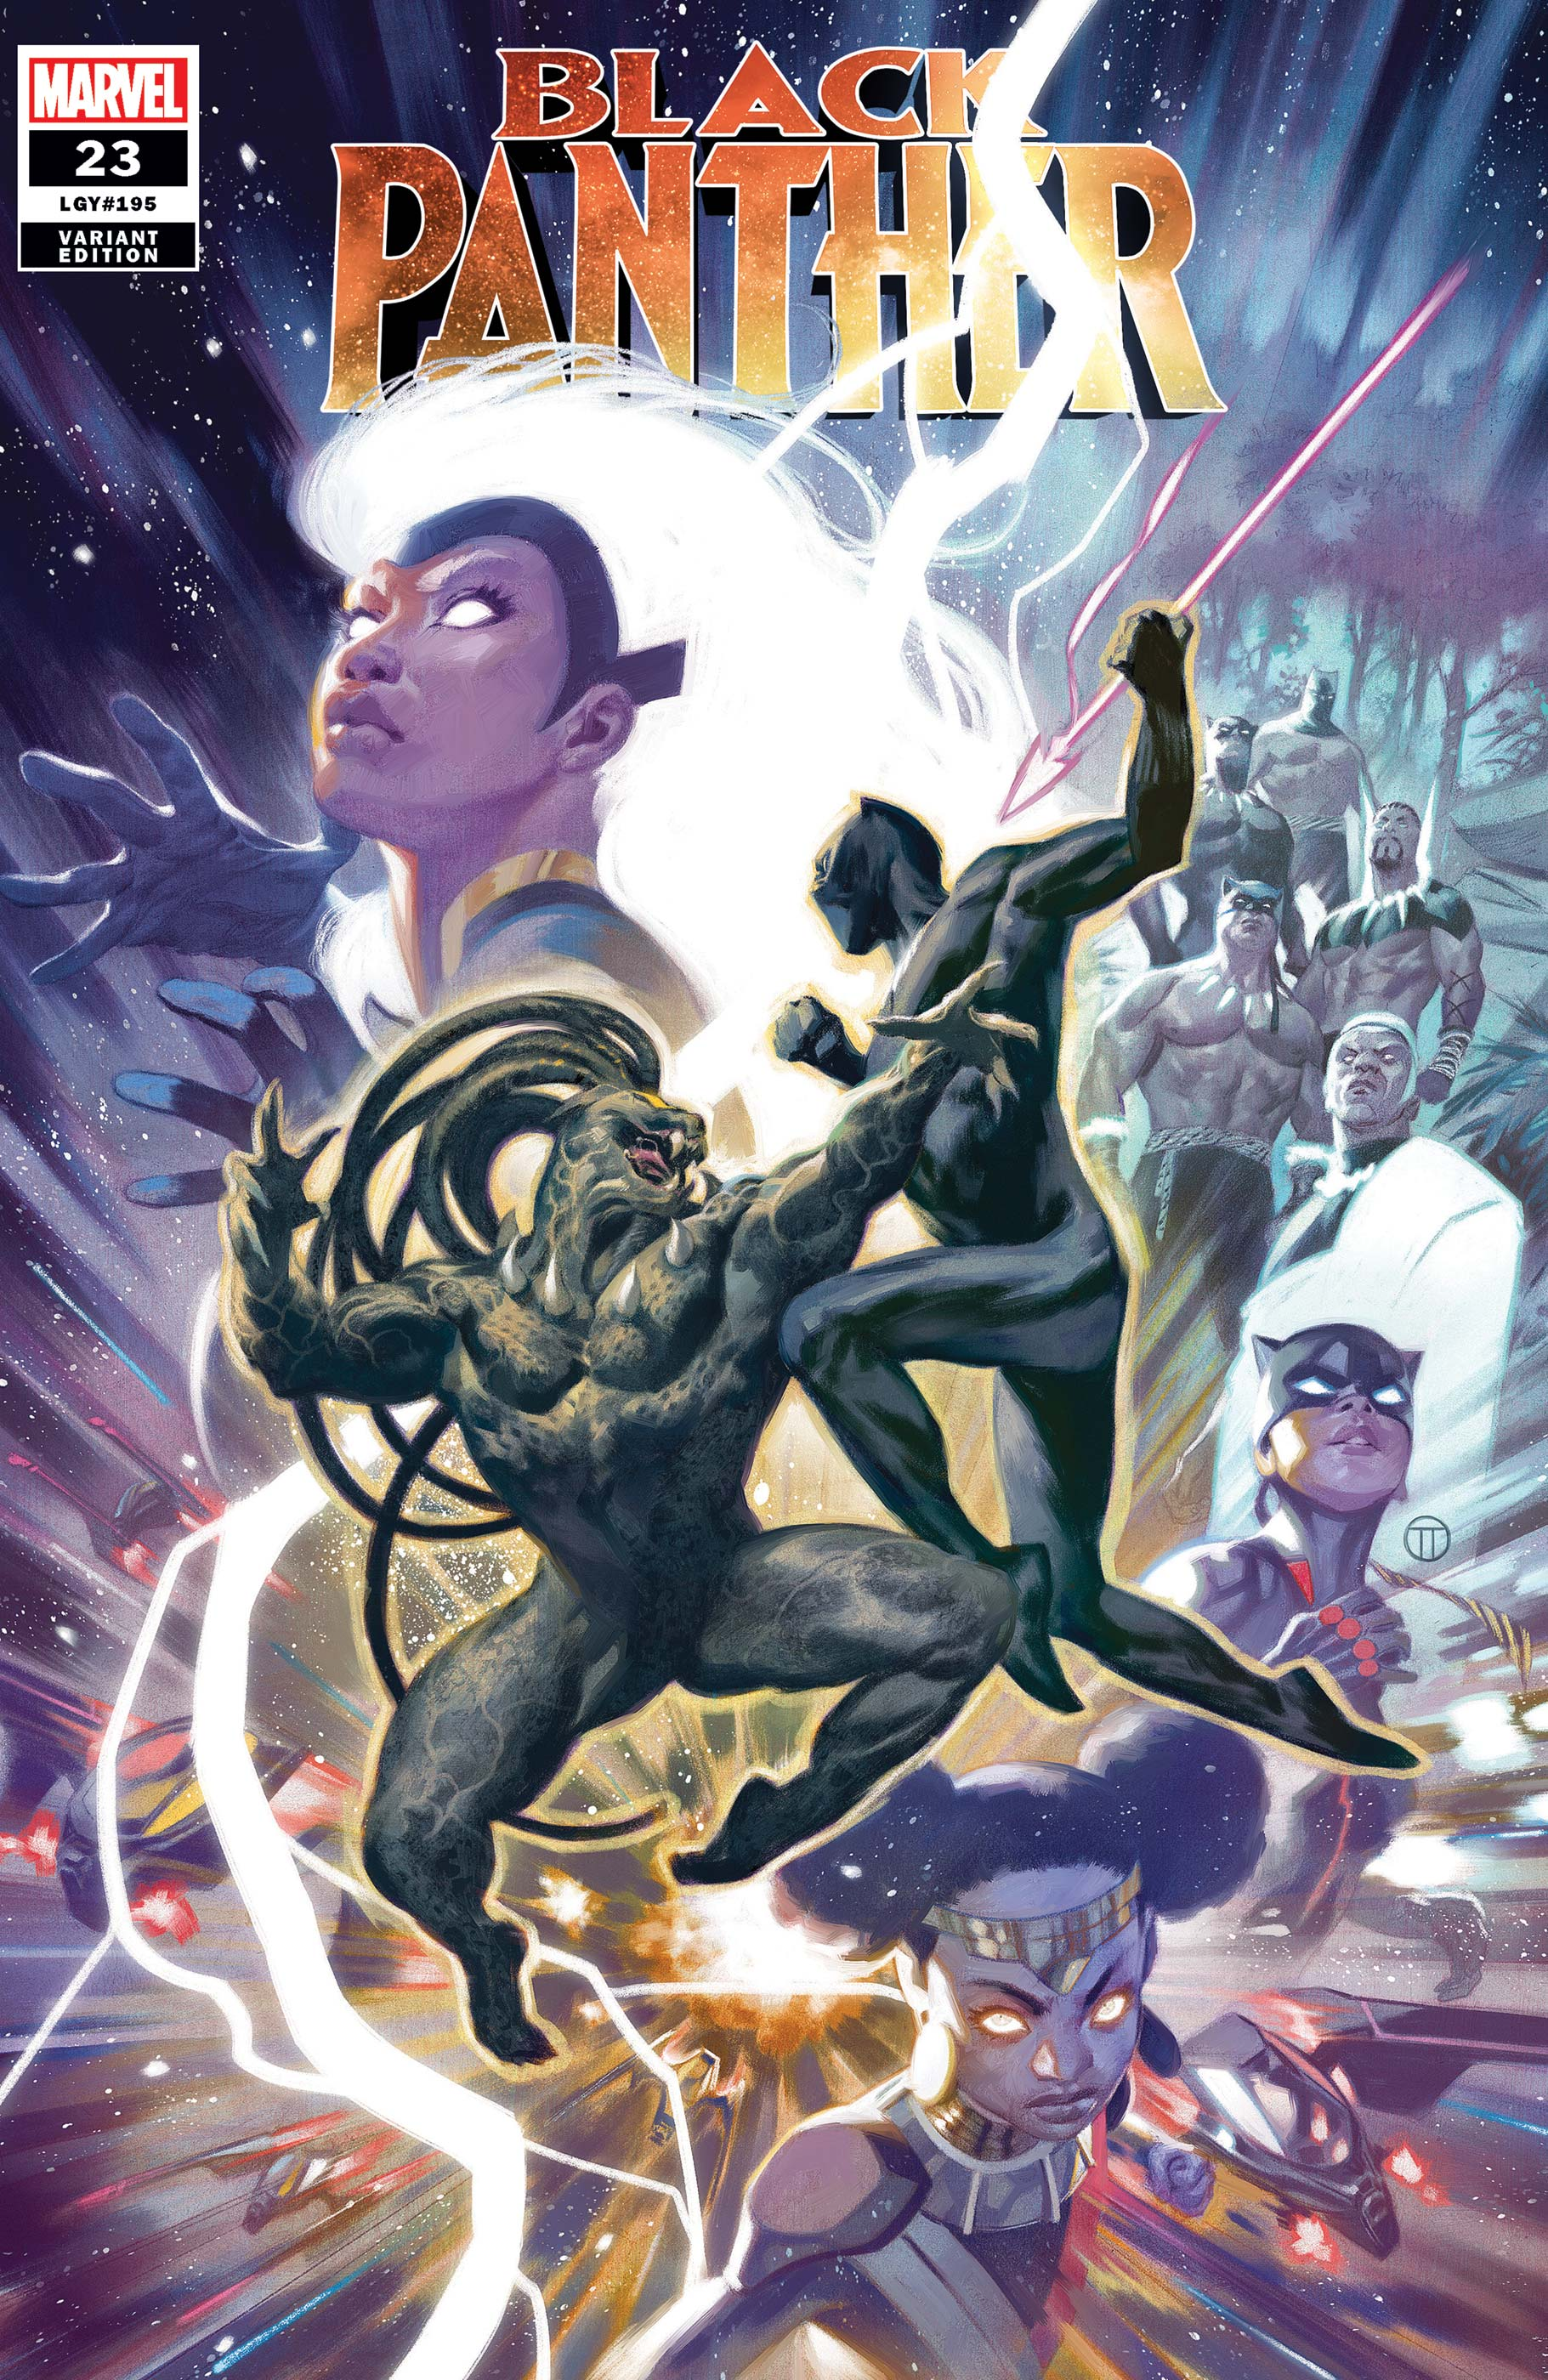 Black Panther #23 Variant Cover by Julian Tedesco